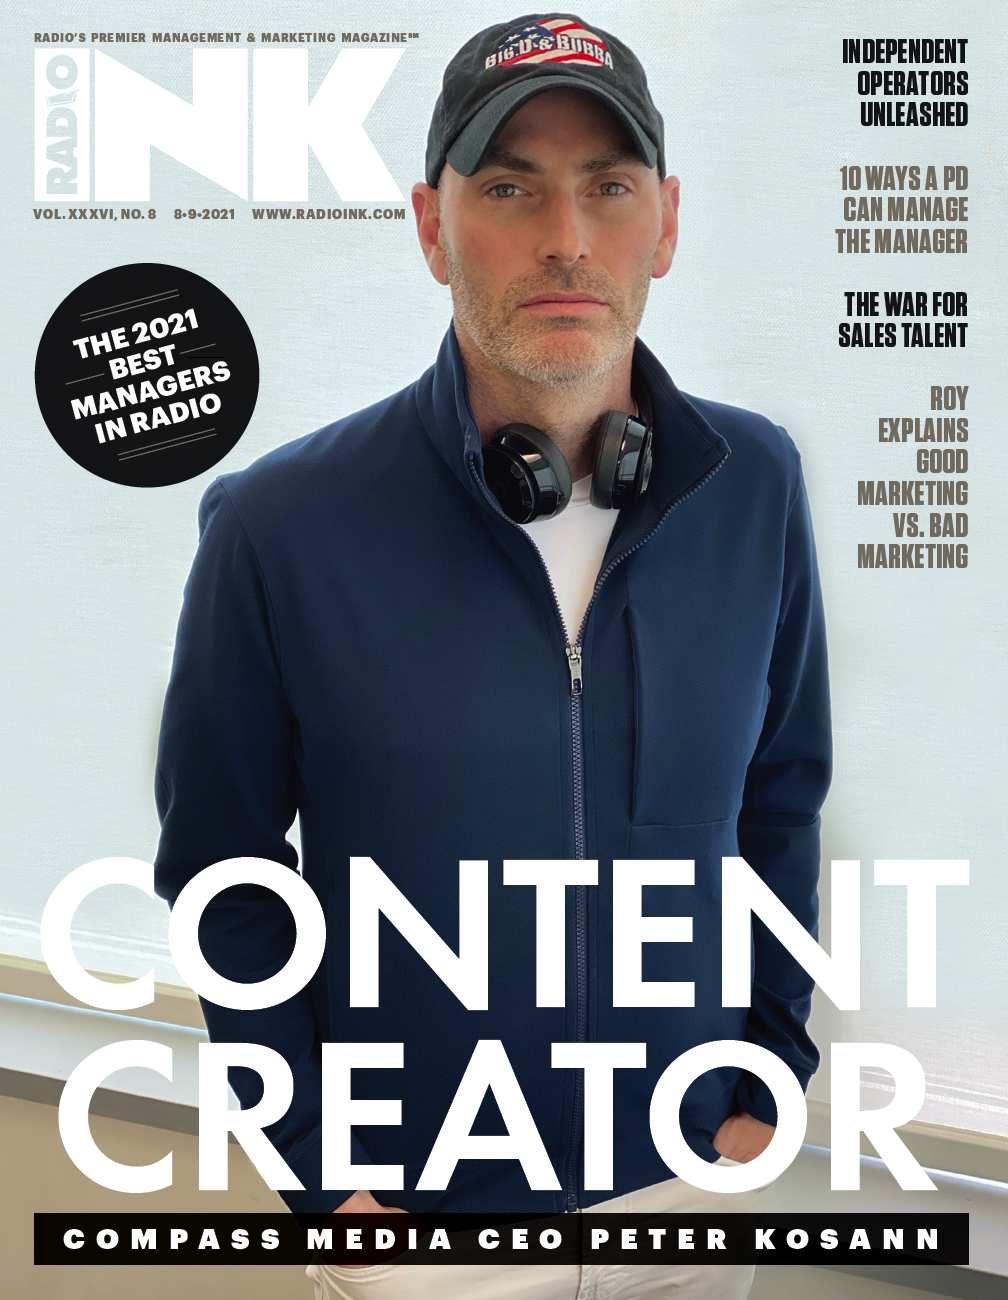 Cover of August 9, 2021 issue of Radio Ink